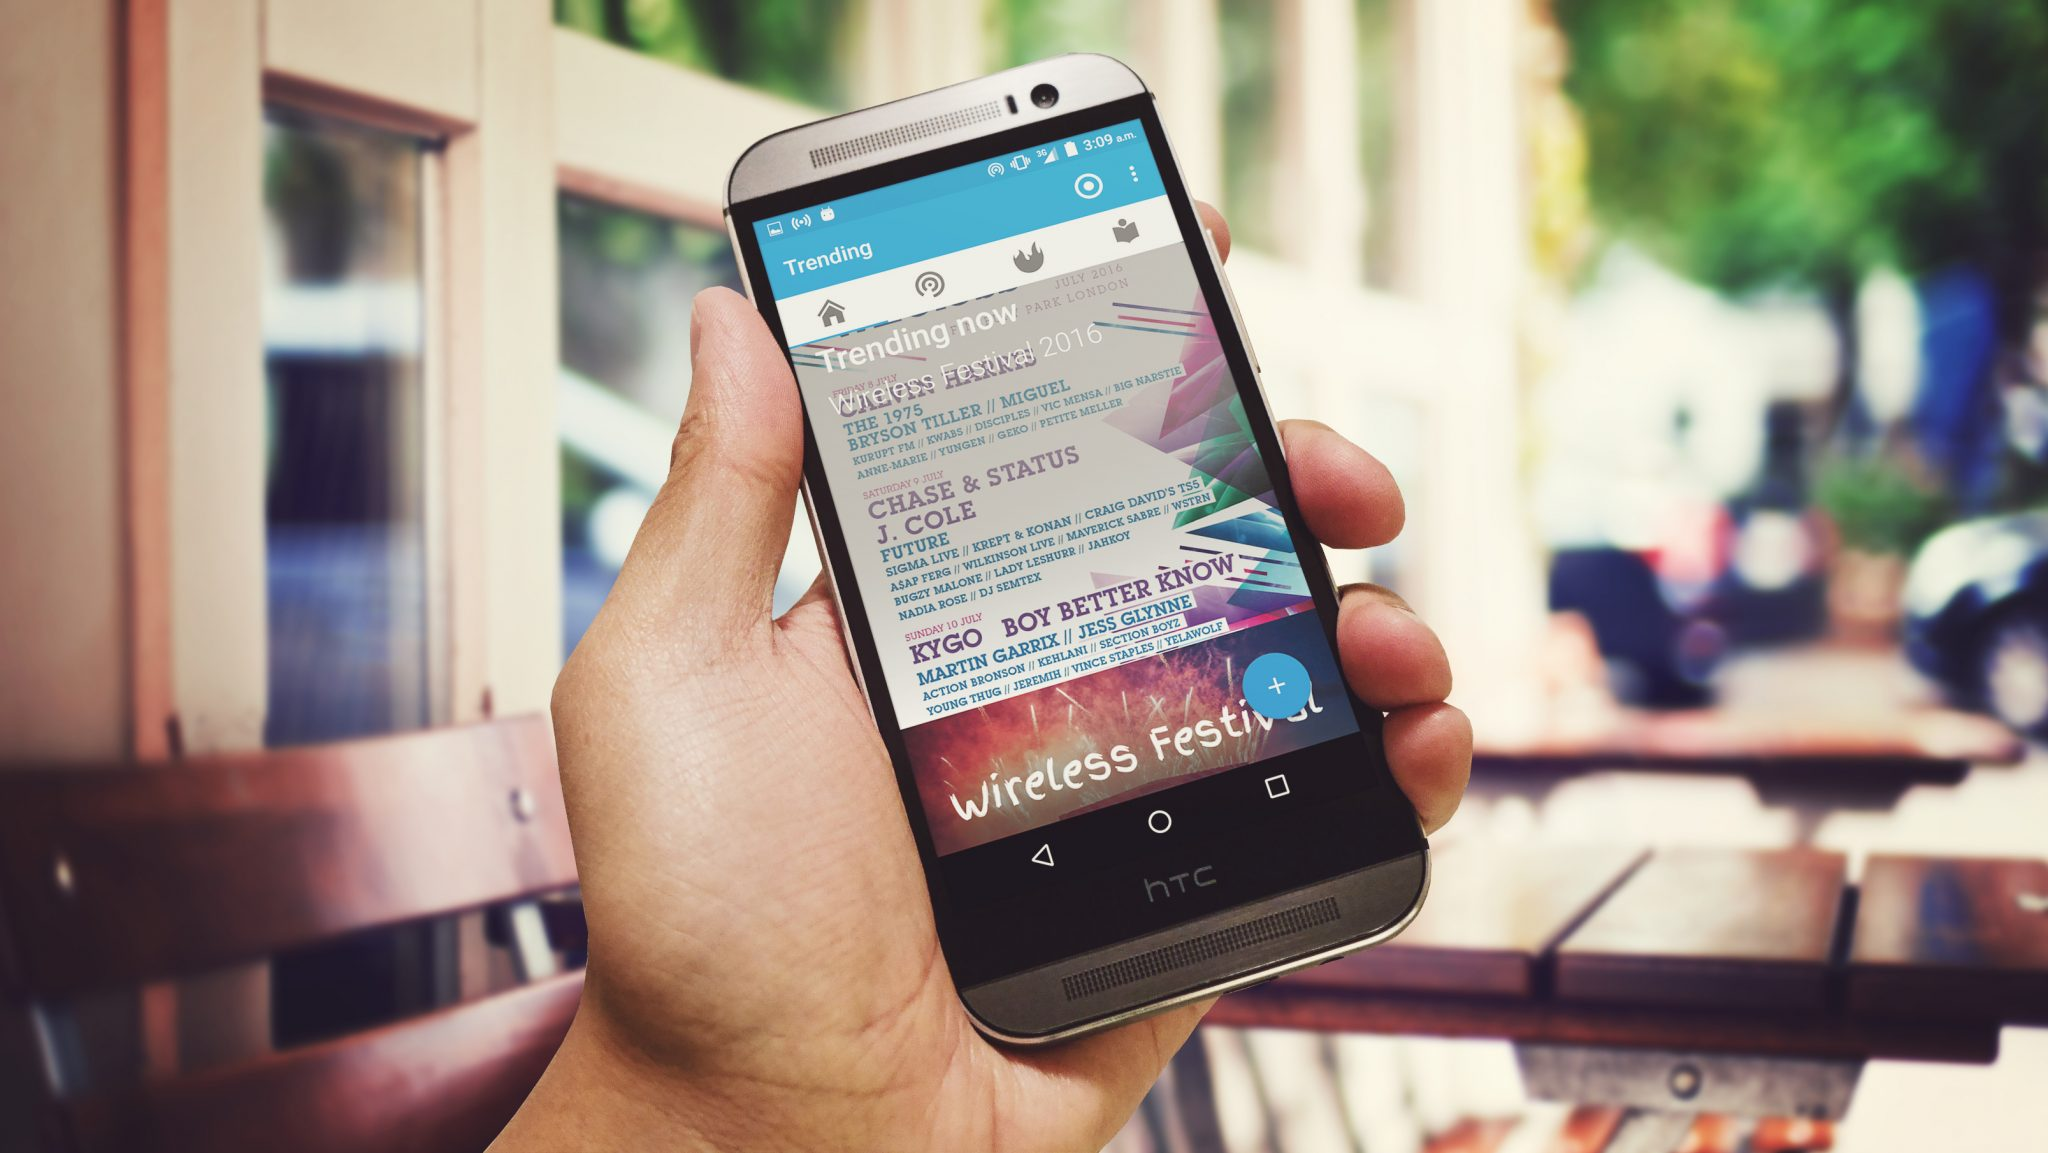 Trend Stalk – The New App Everyone Is Using!